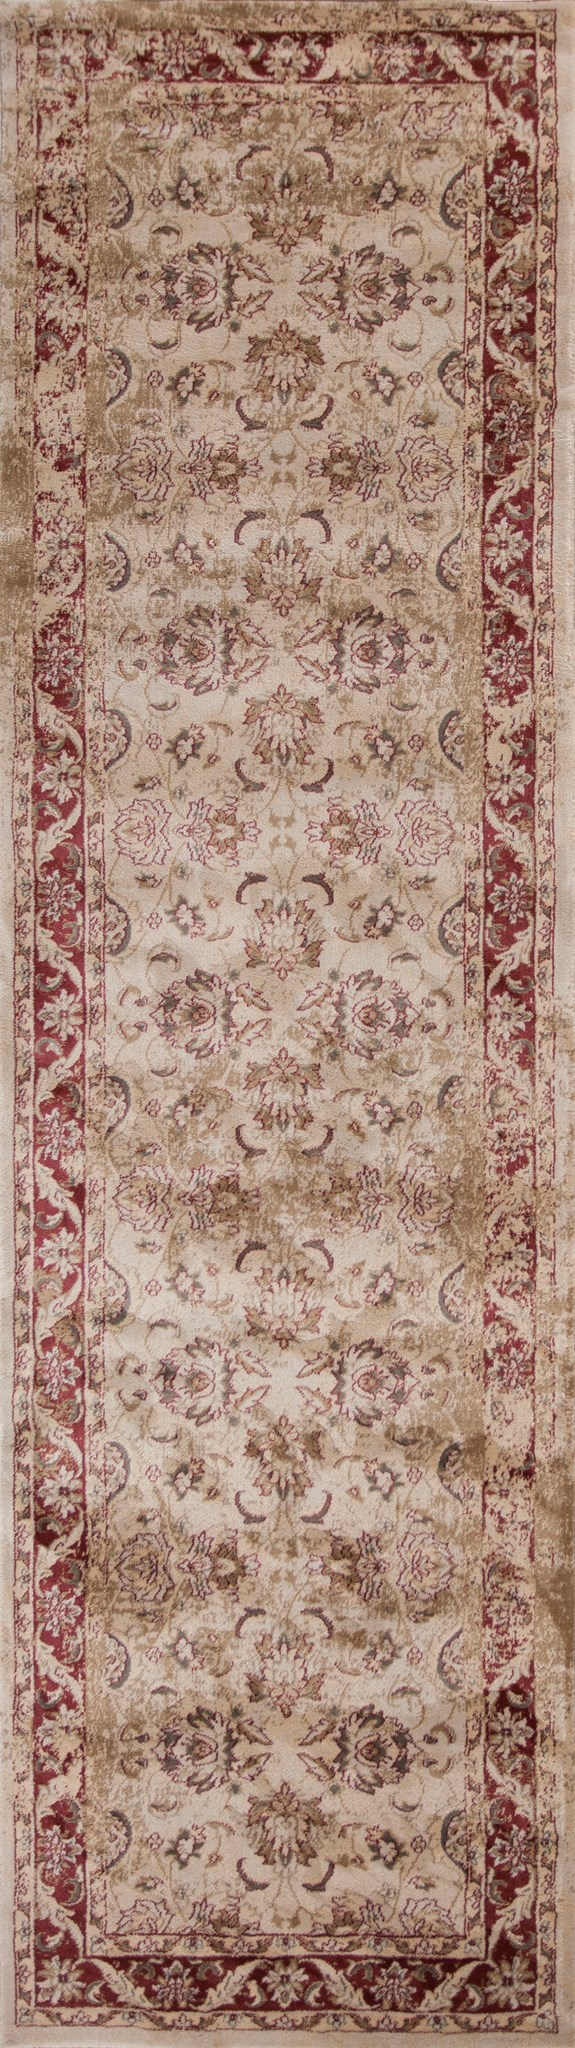 Jasmine 3759 Ivory/Red Traditions